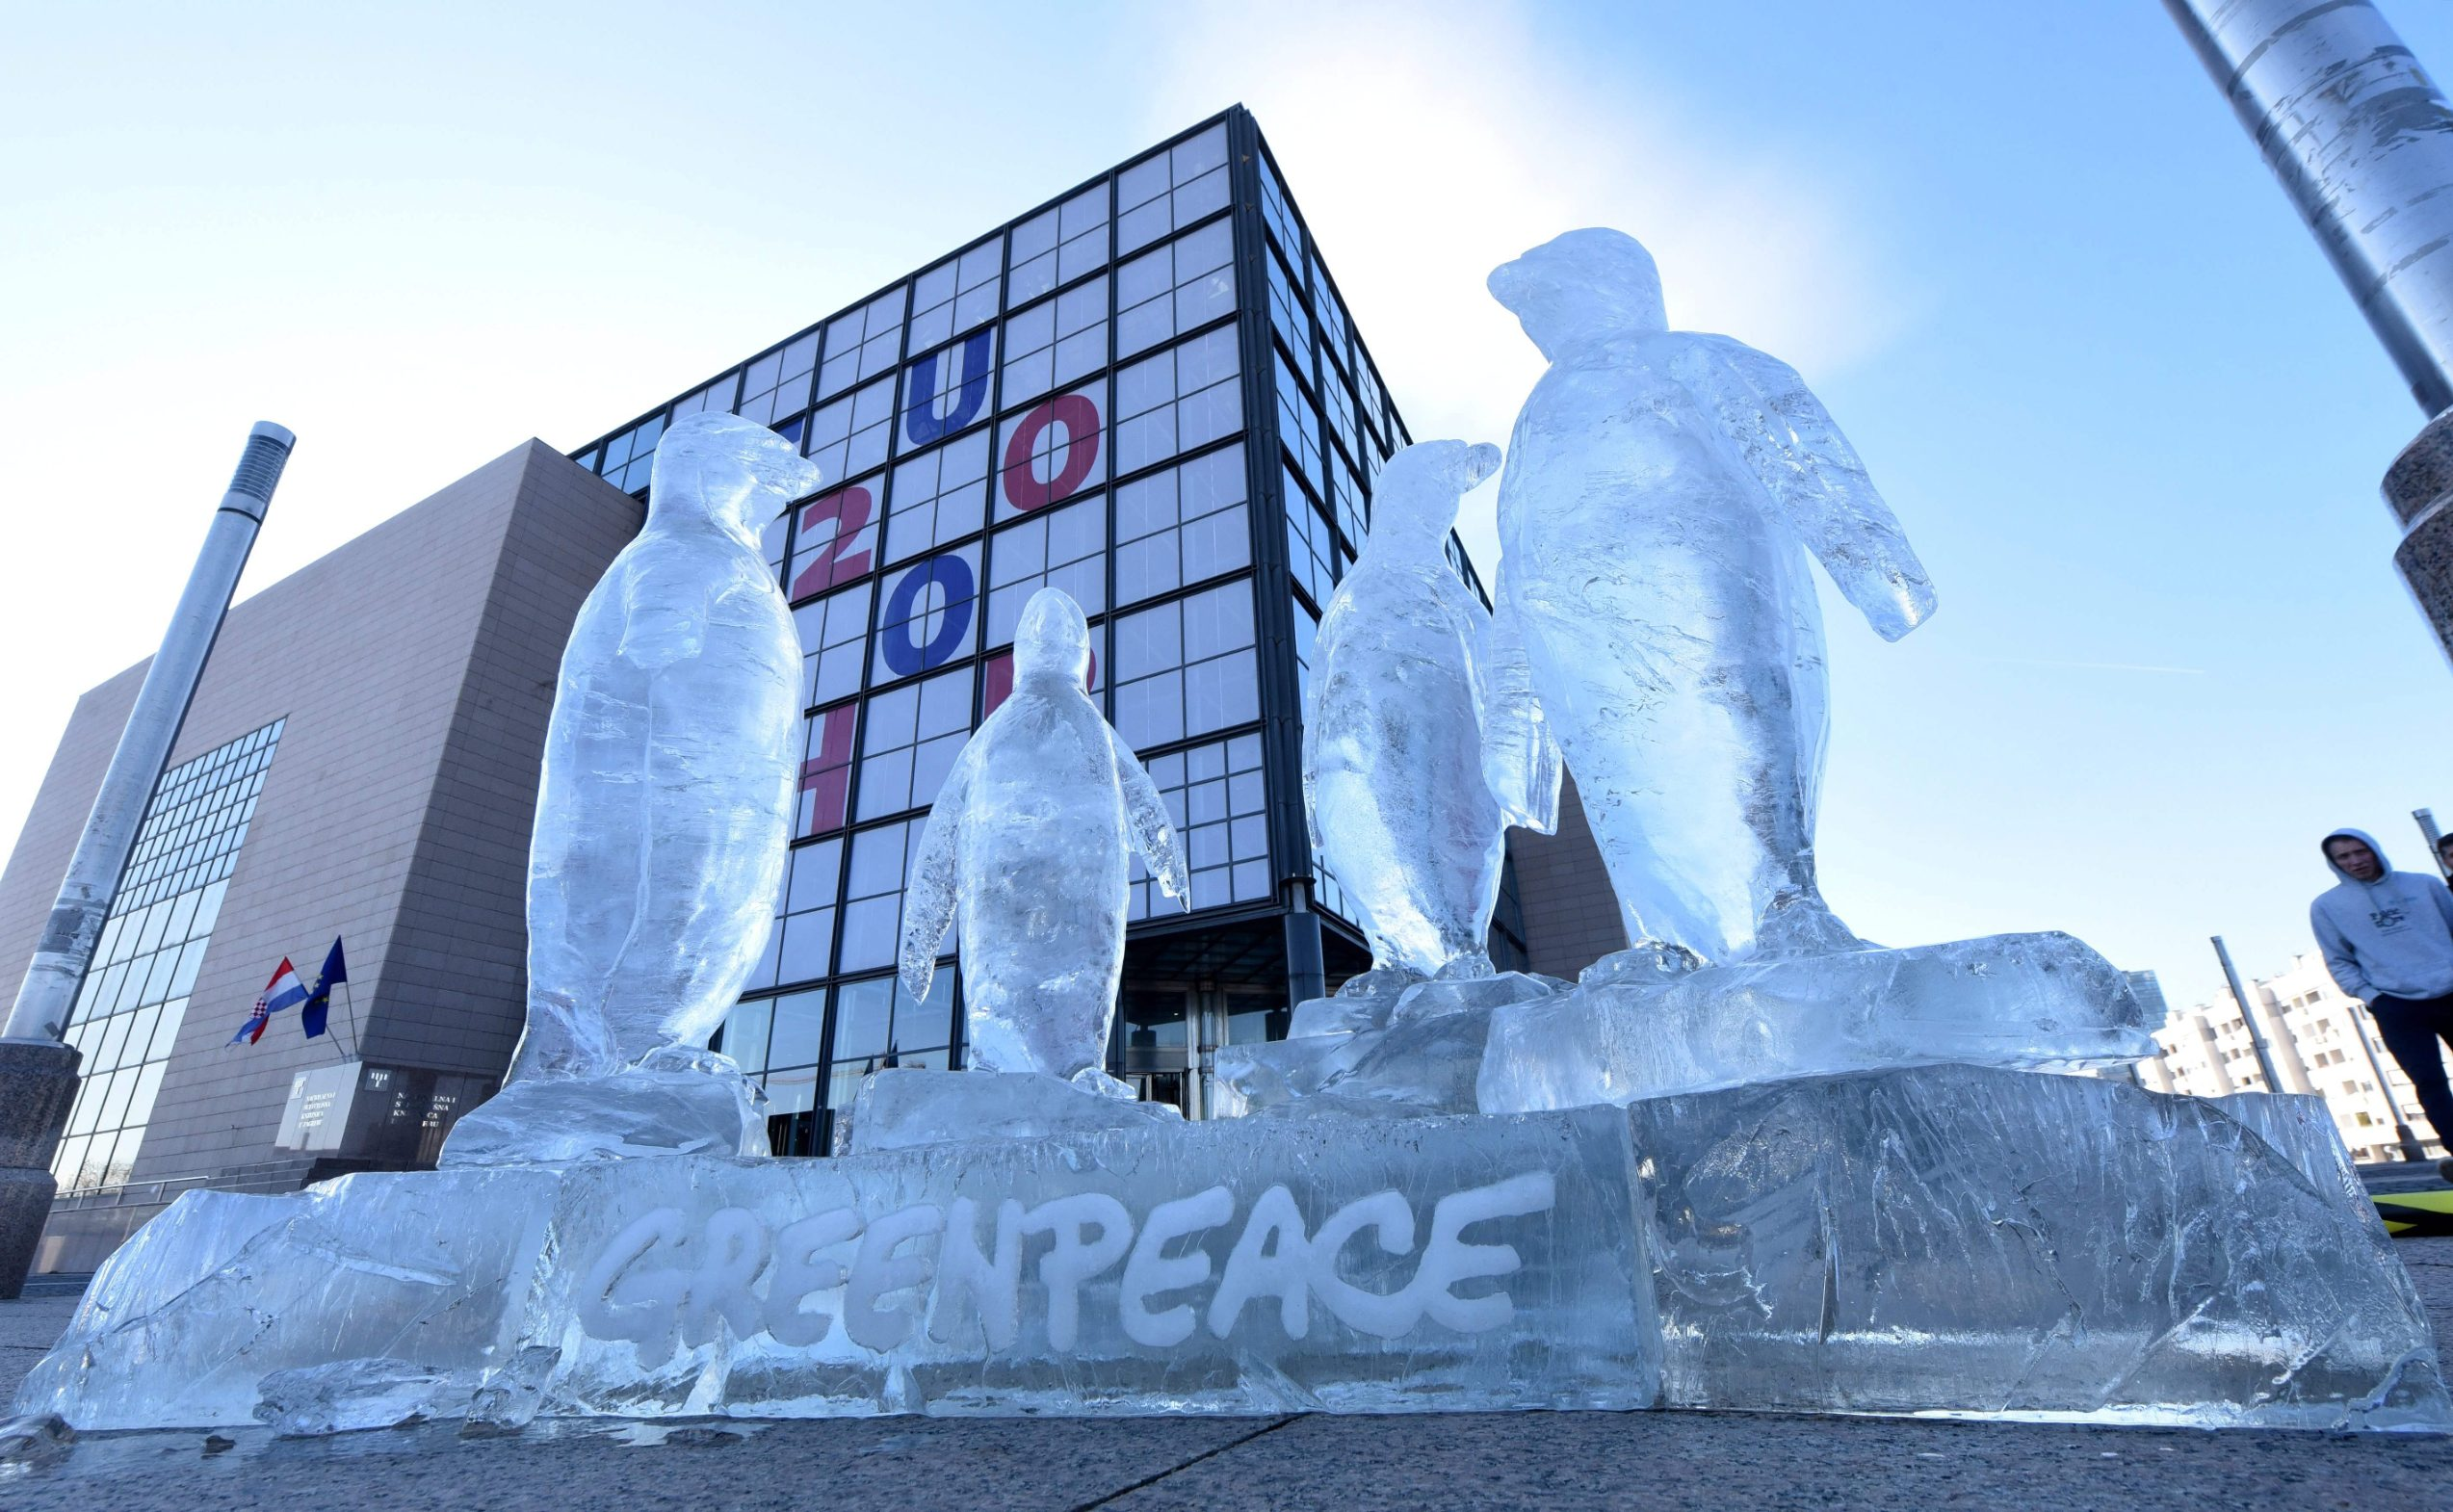 An ice sculpture depicting penguins has  been installed by Greepeance activists outside the national and university library, the seat of Croatia's EU rotating presidency, as part of an international campaign to protect oceans, in Zagreb, on February 7, 2020. (Photo by Denis LOVROVIC / AFP)